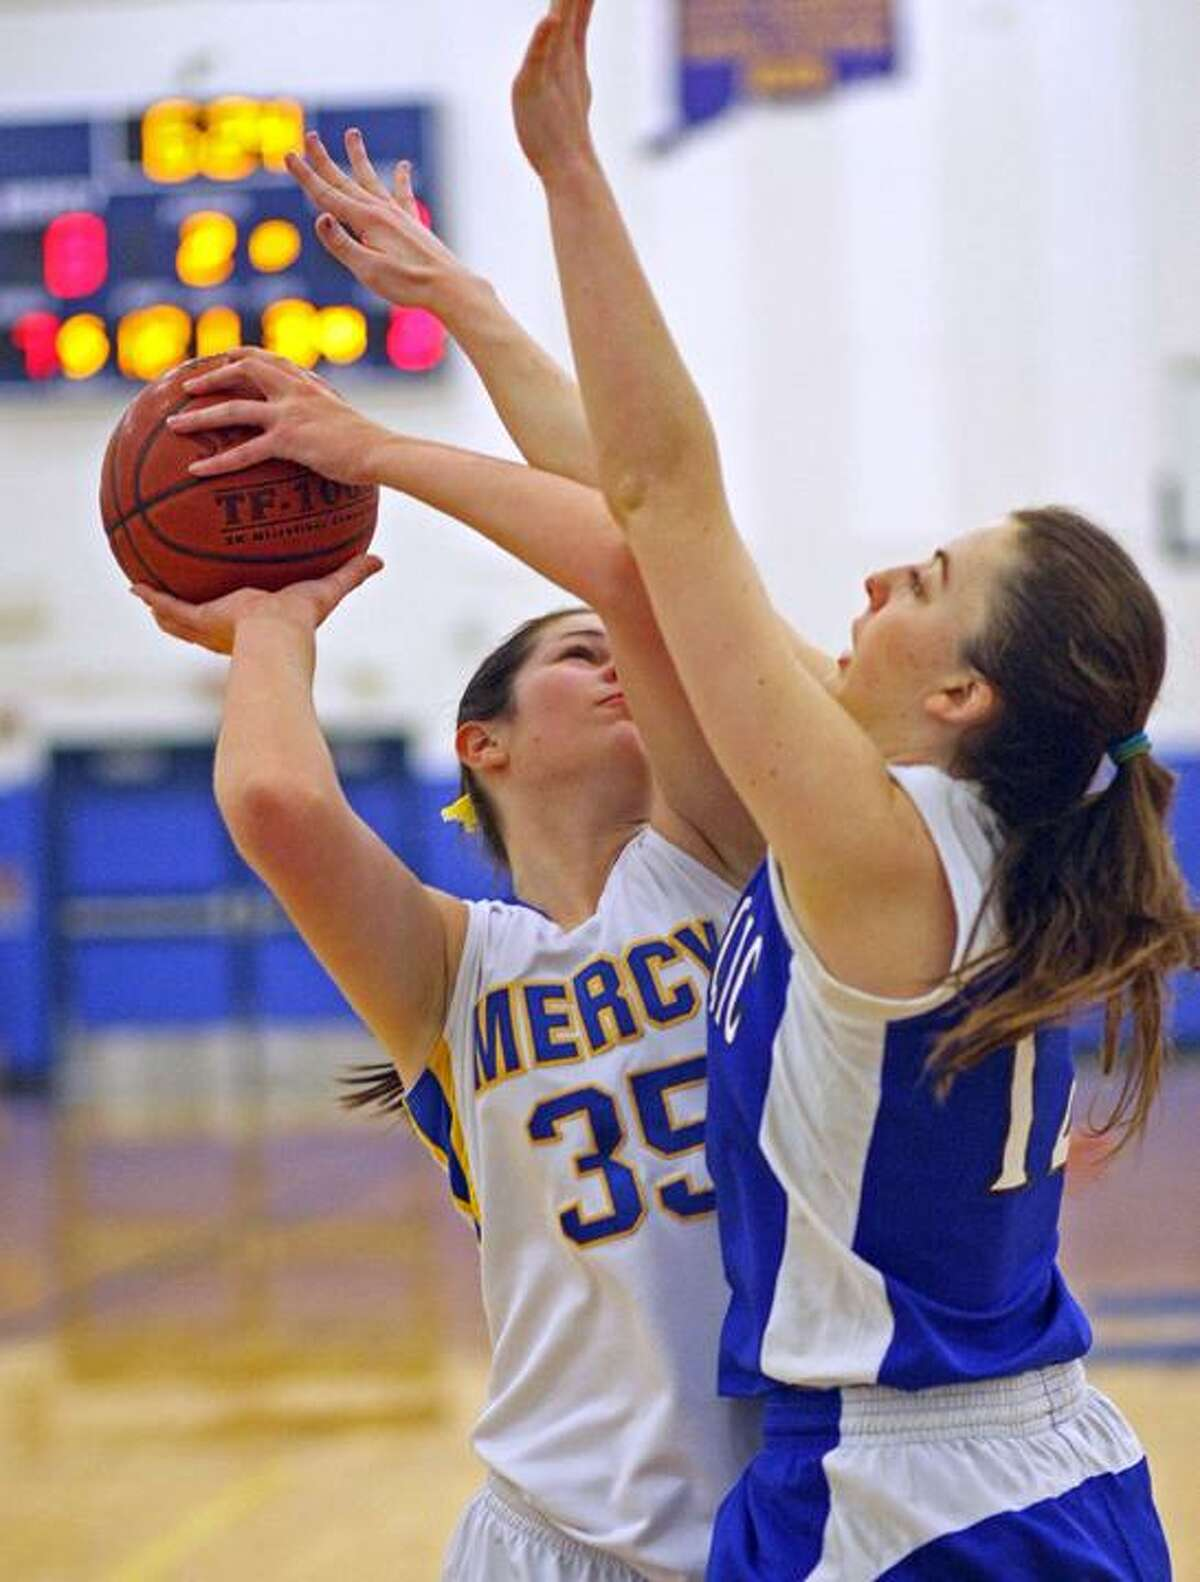 Mercy's Kendra Landy drives against East Catholic Monday in Middletown.